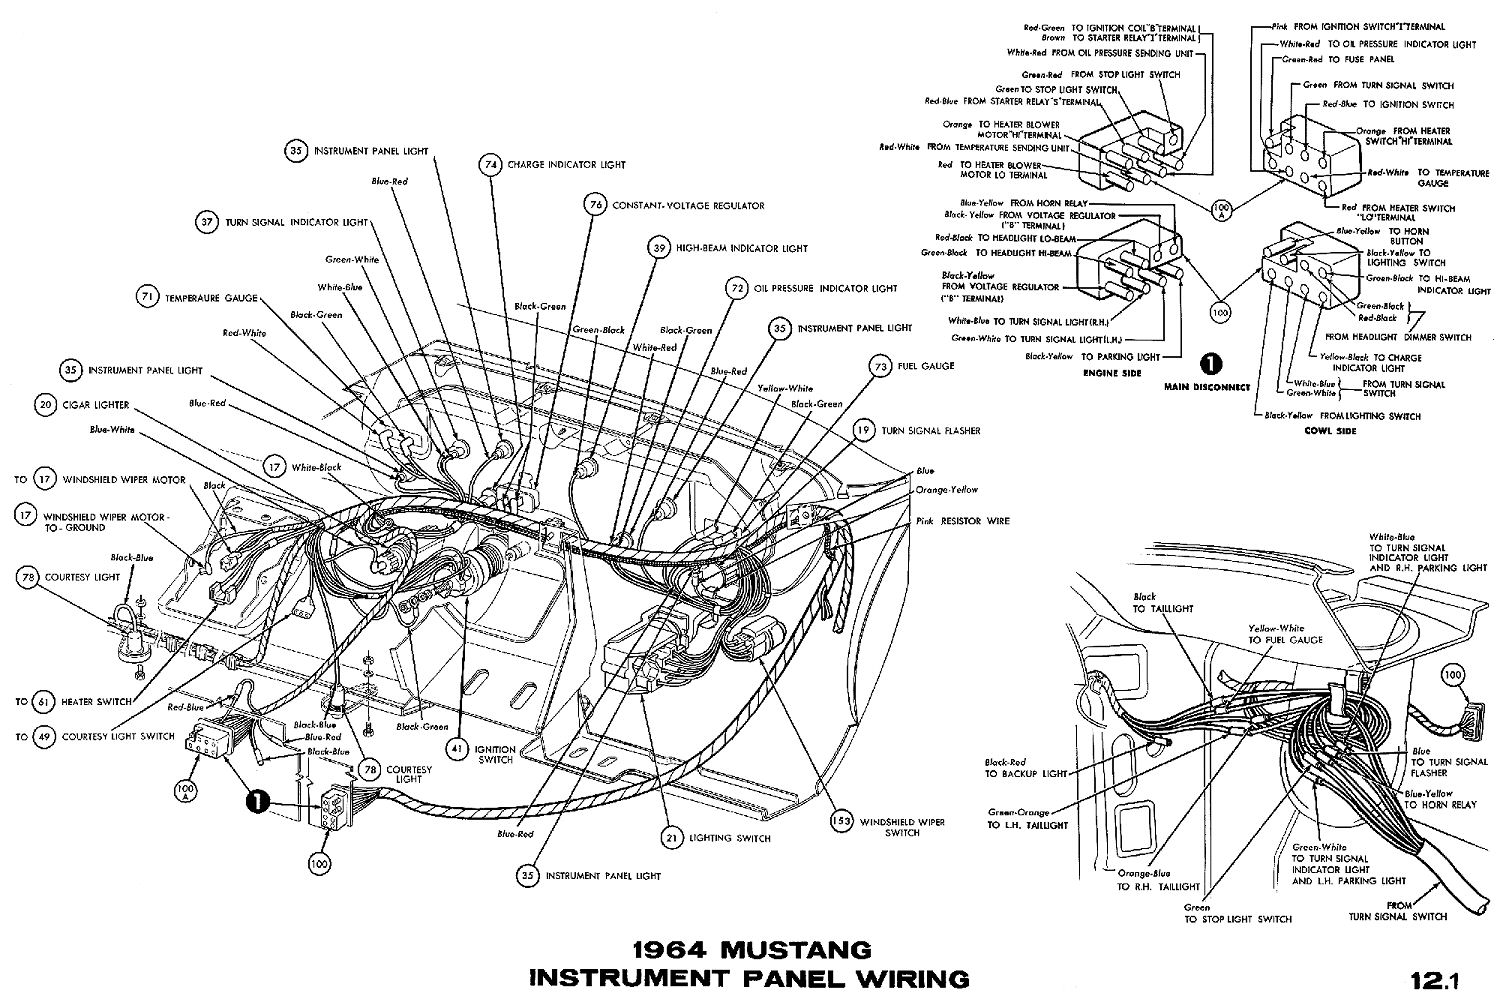 Tremendous 1964 Mustang Wiring Diagrams Average Joe Restoration Wiring Database Gramgelartorg